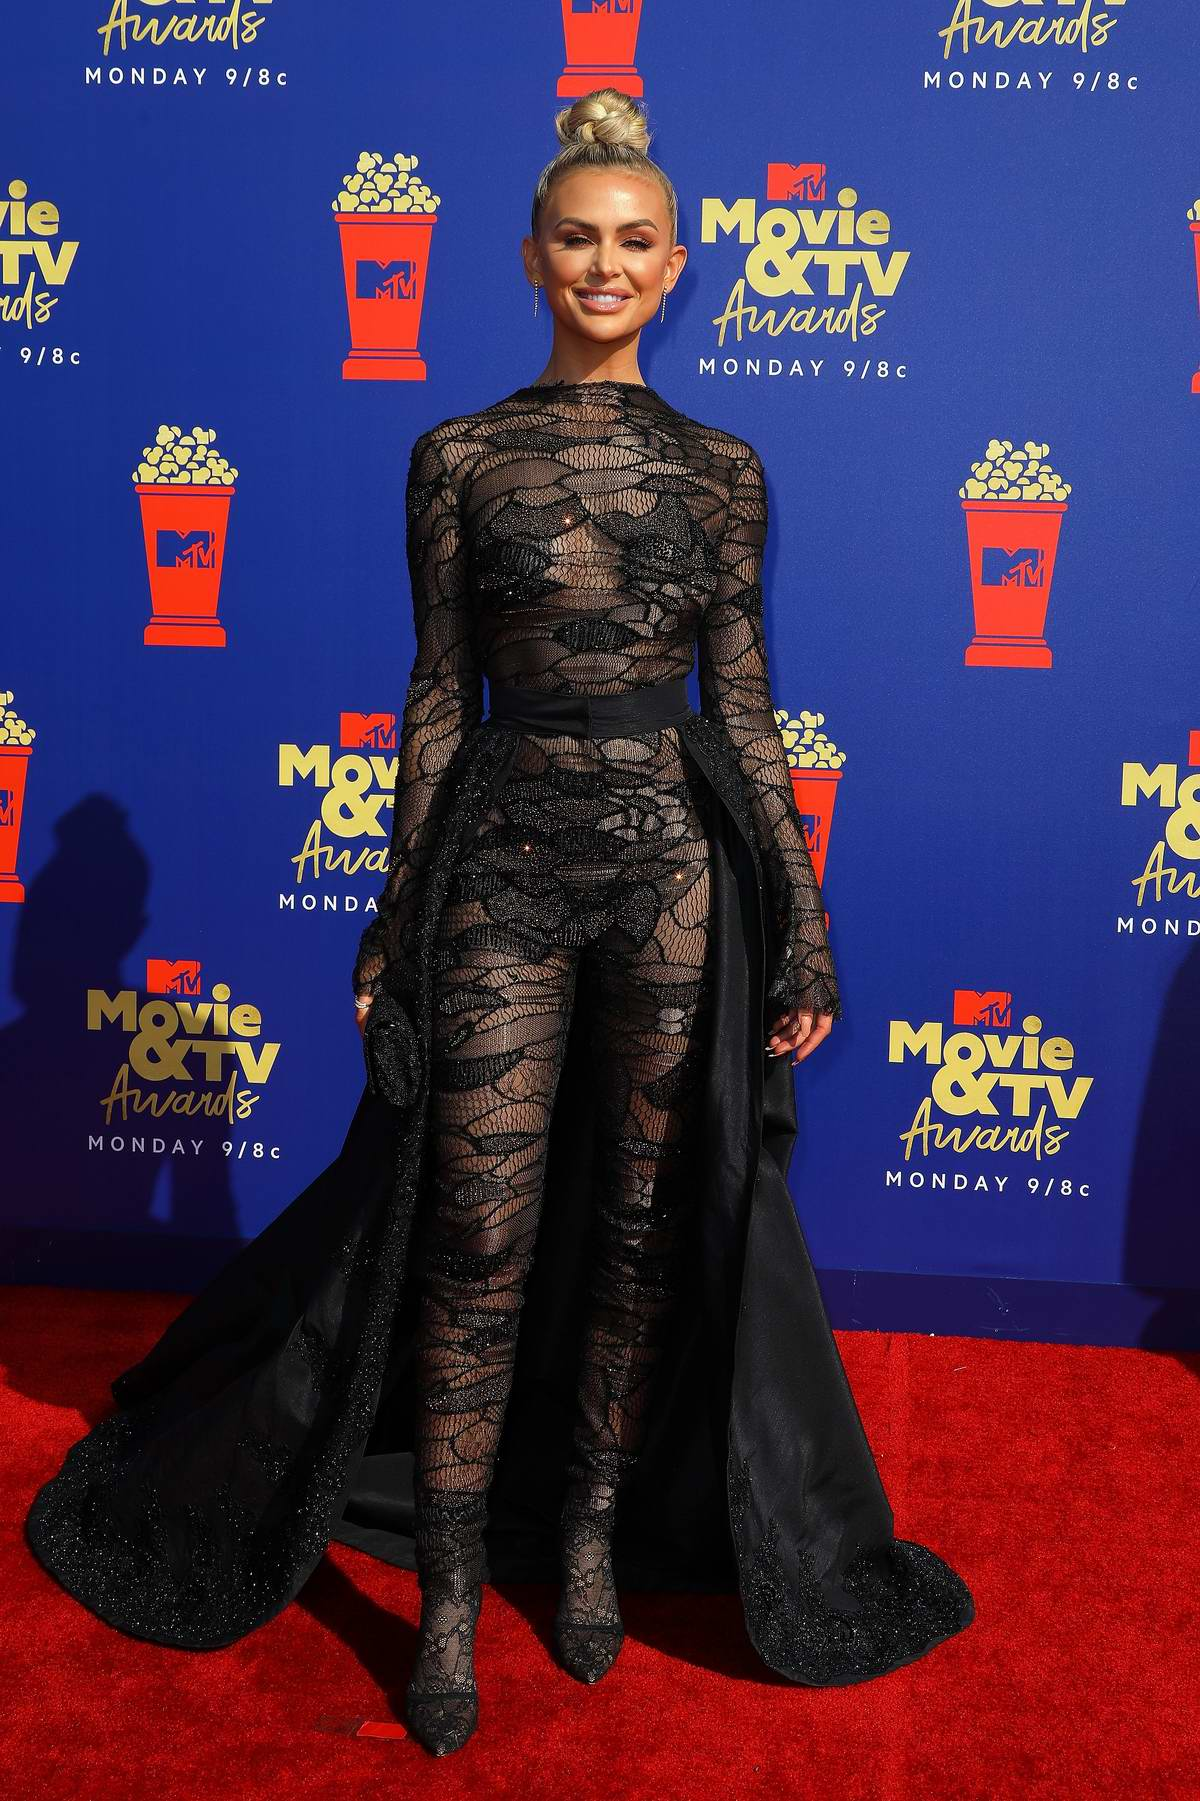 Lala Kent attends the 2019 MTV Movie and TV Awards at Barker Hangar in Santa Monica, California